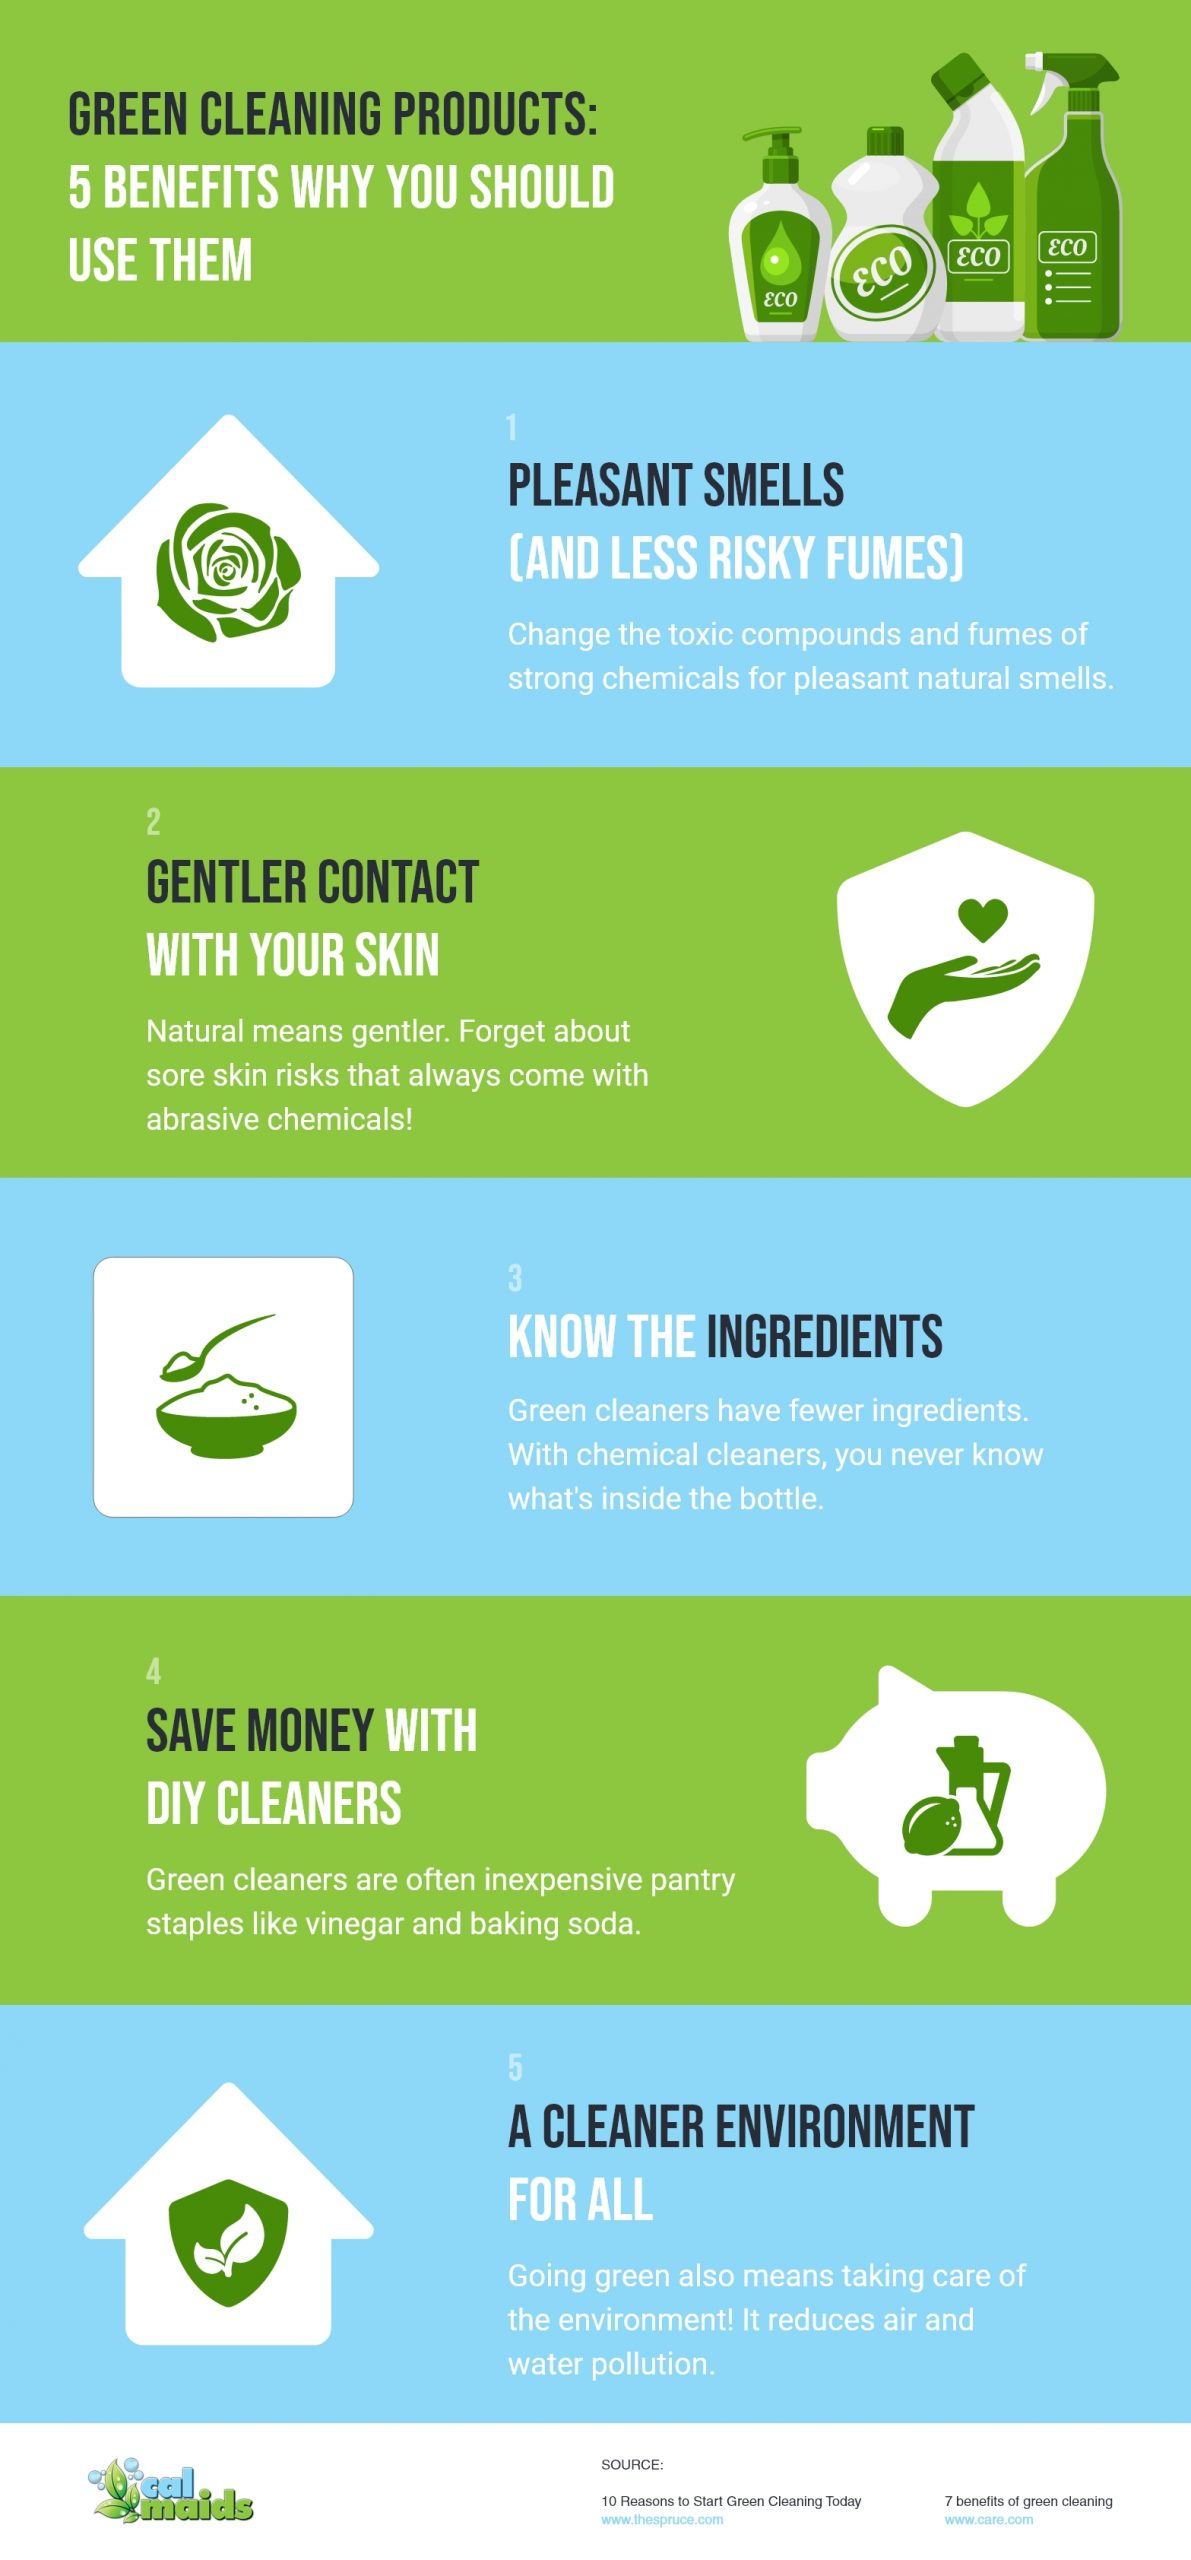 CalMaids Green Cleaning Products 5 Benefits Why You Should Use Them